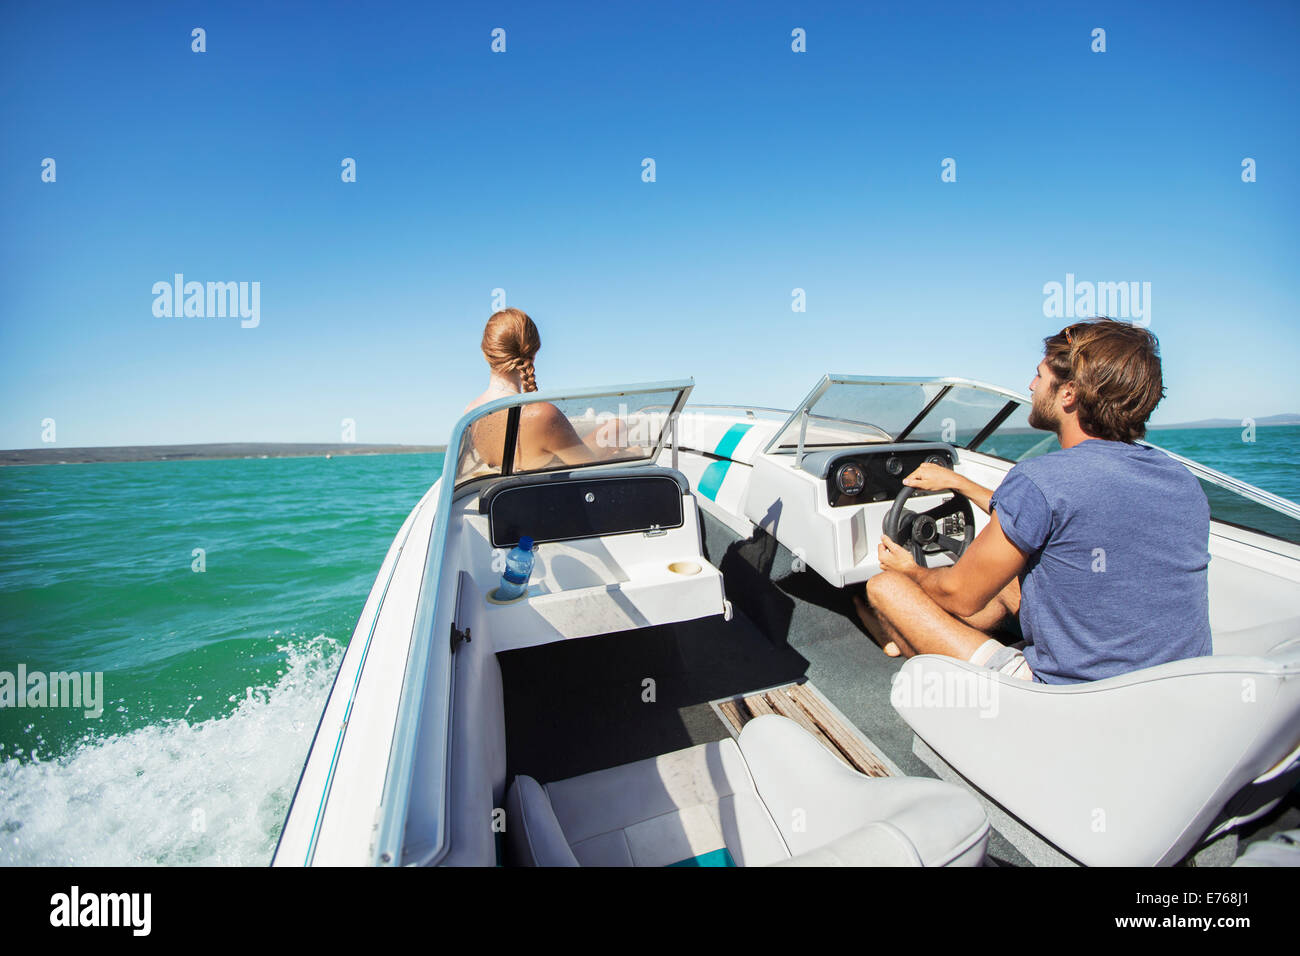 Man steering boat on water with girlfriend - Stock Image